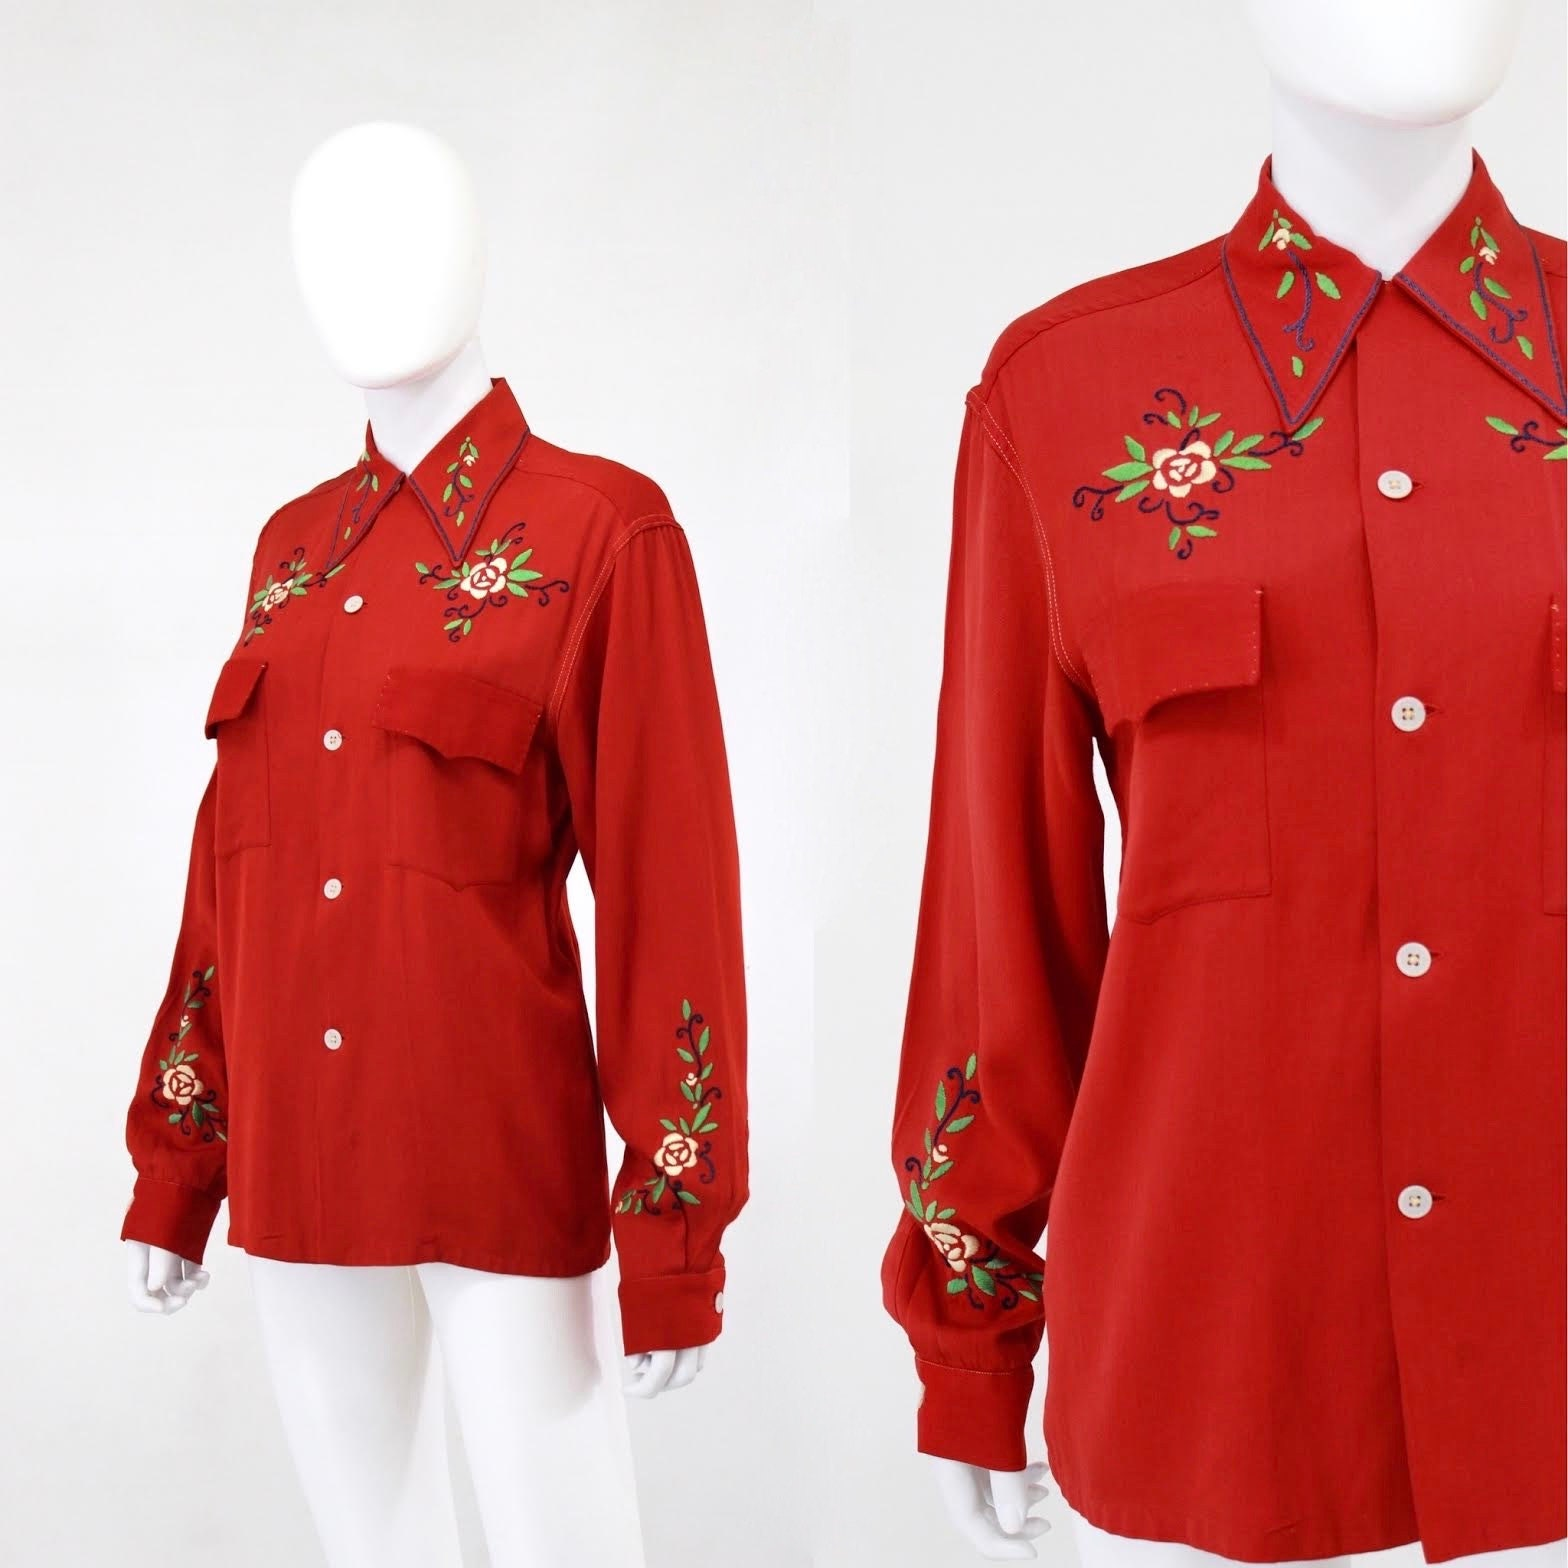 1940s Men's Shirts, Sweaters, Vests 1940S Holiday Red Embroidered Western Blouse - Gabardine Button Down 40S Gab  Size Large WomensMed Mens $30.00 AT vintagedancer.com